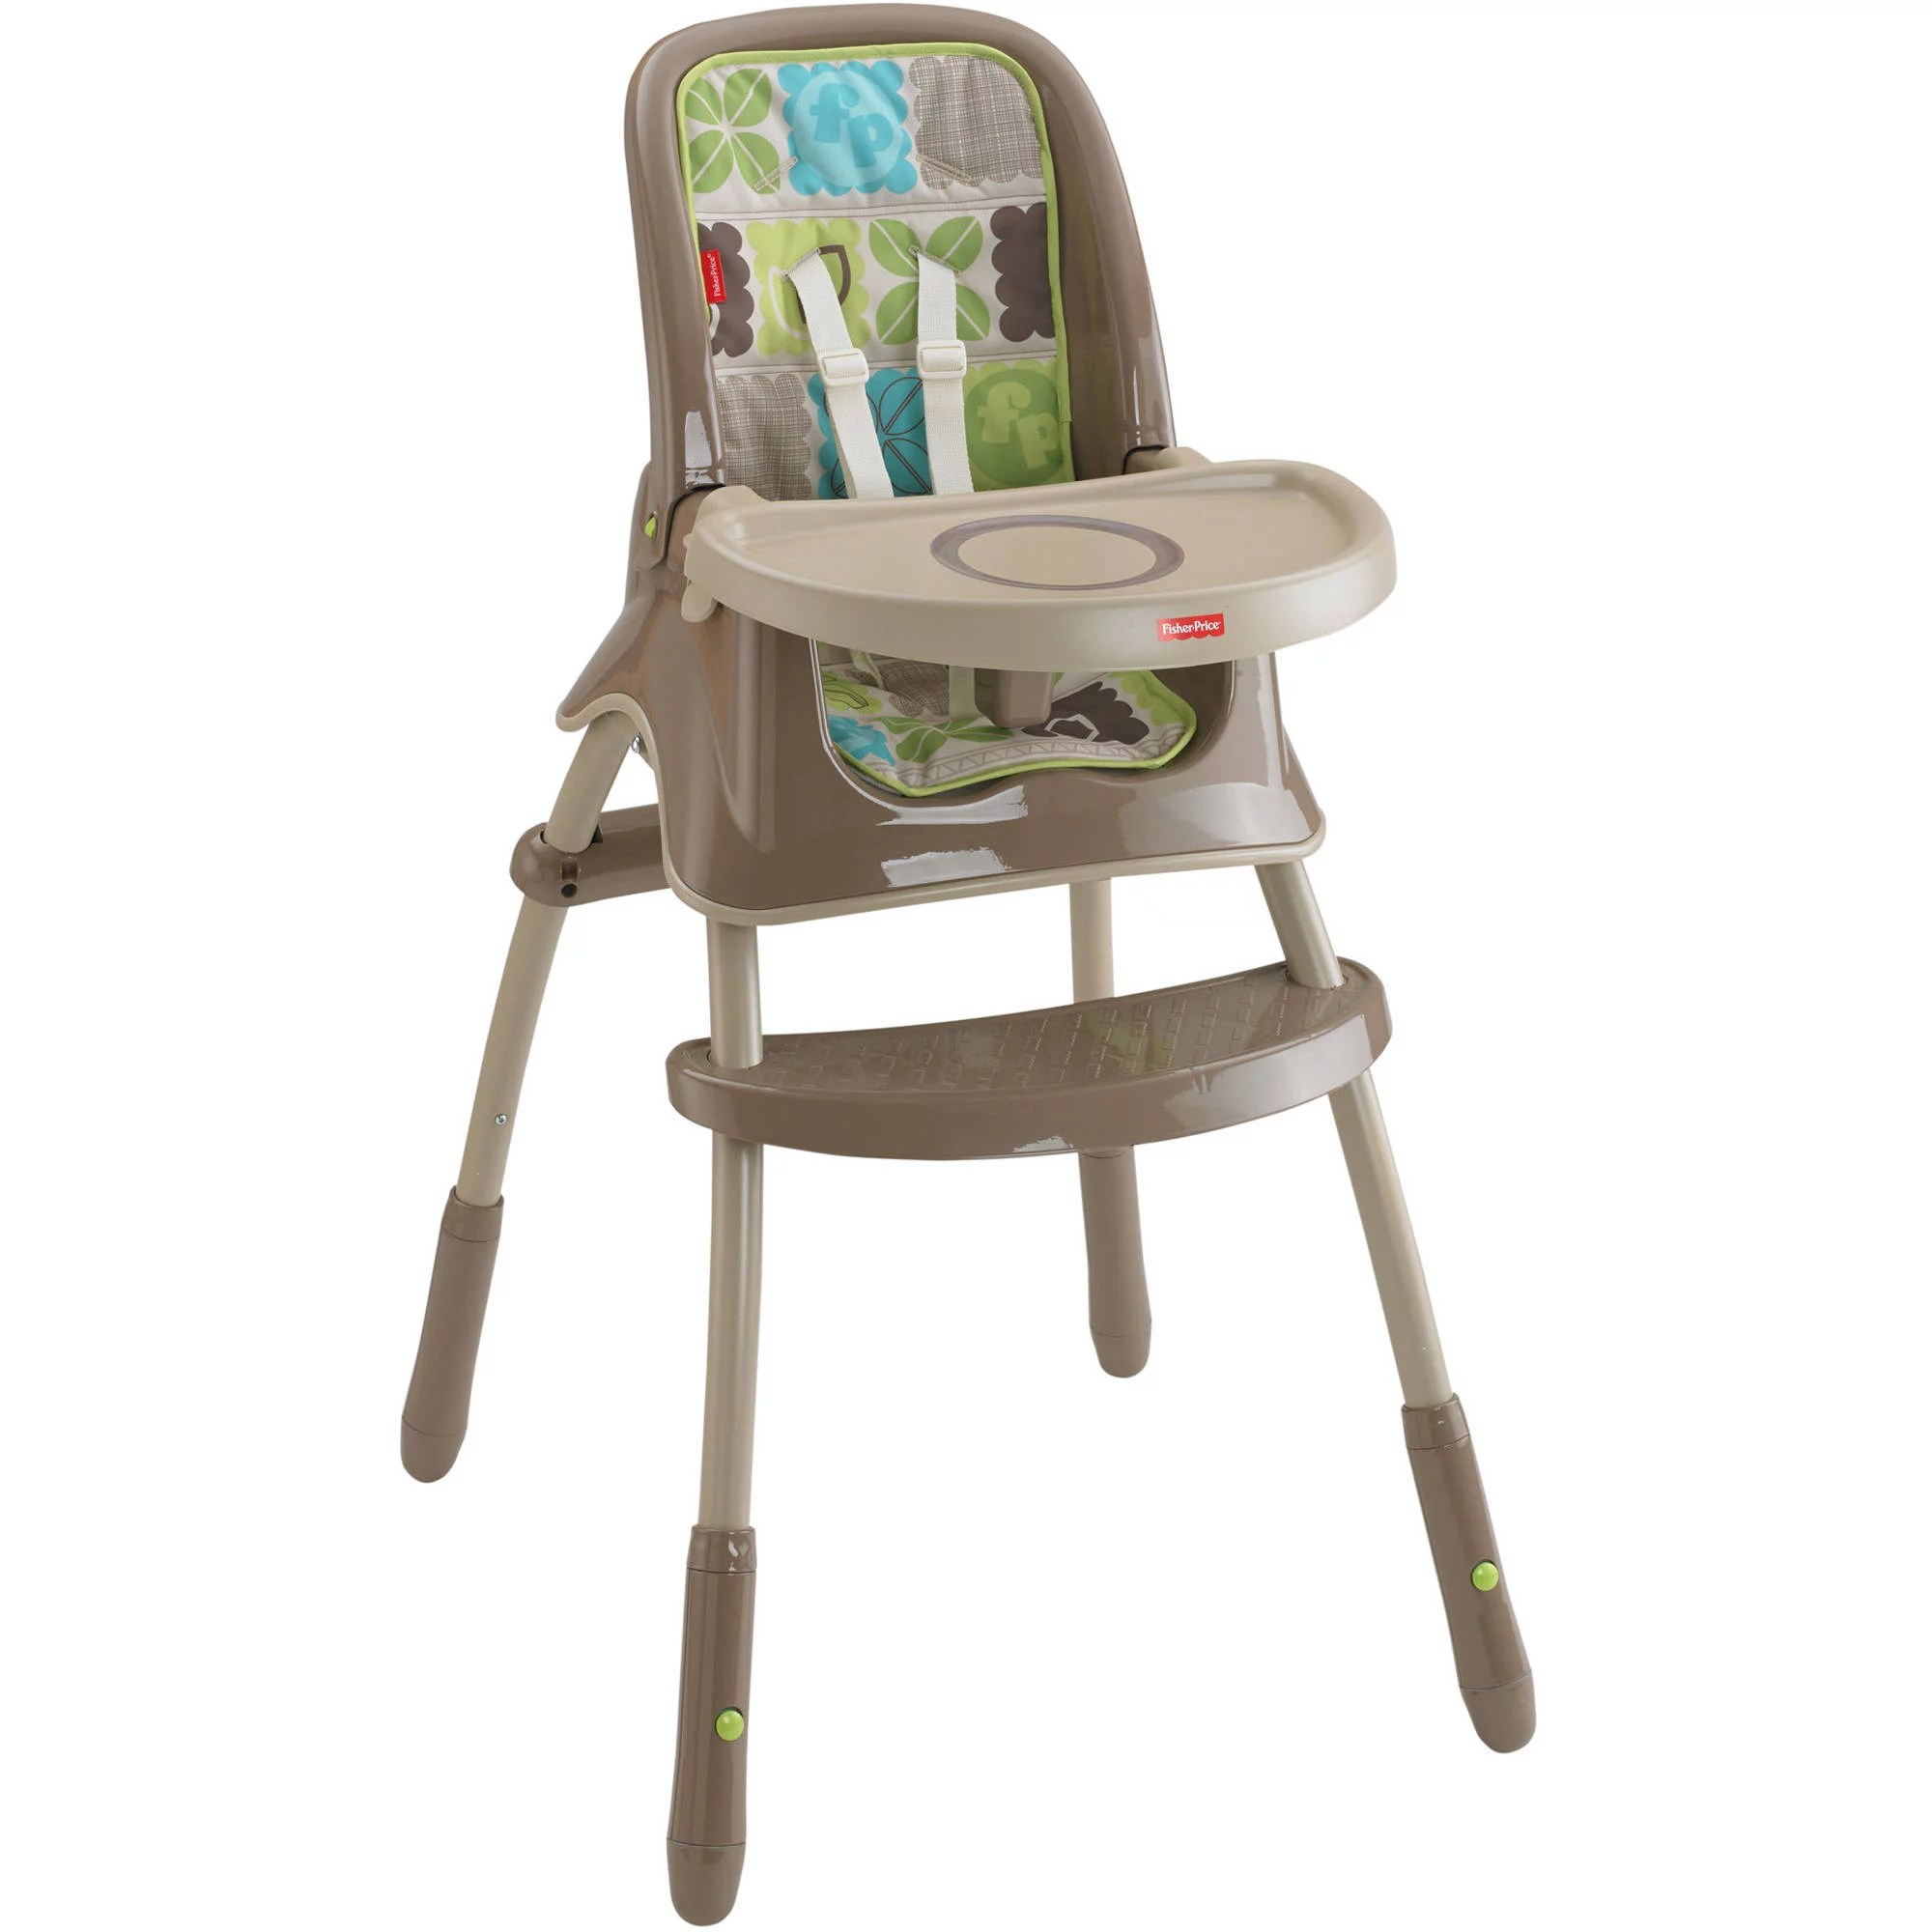 Fisher Price High Chair Seat Fisher Price Swing To High Chair Roselawnlutheran